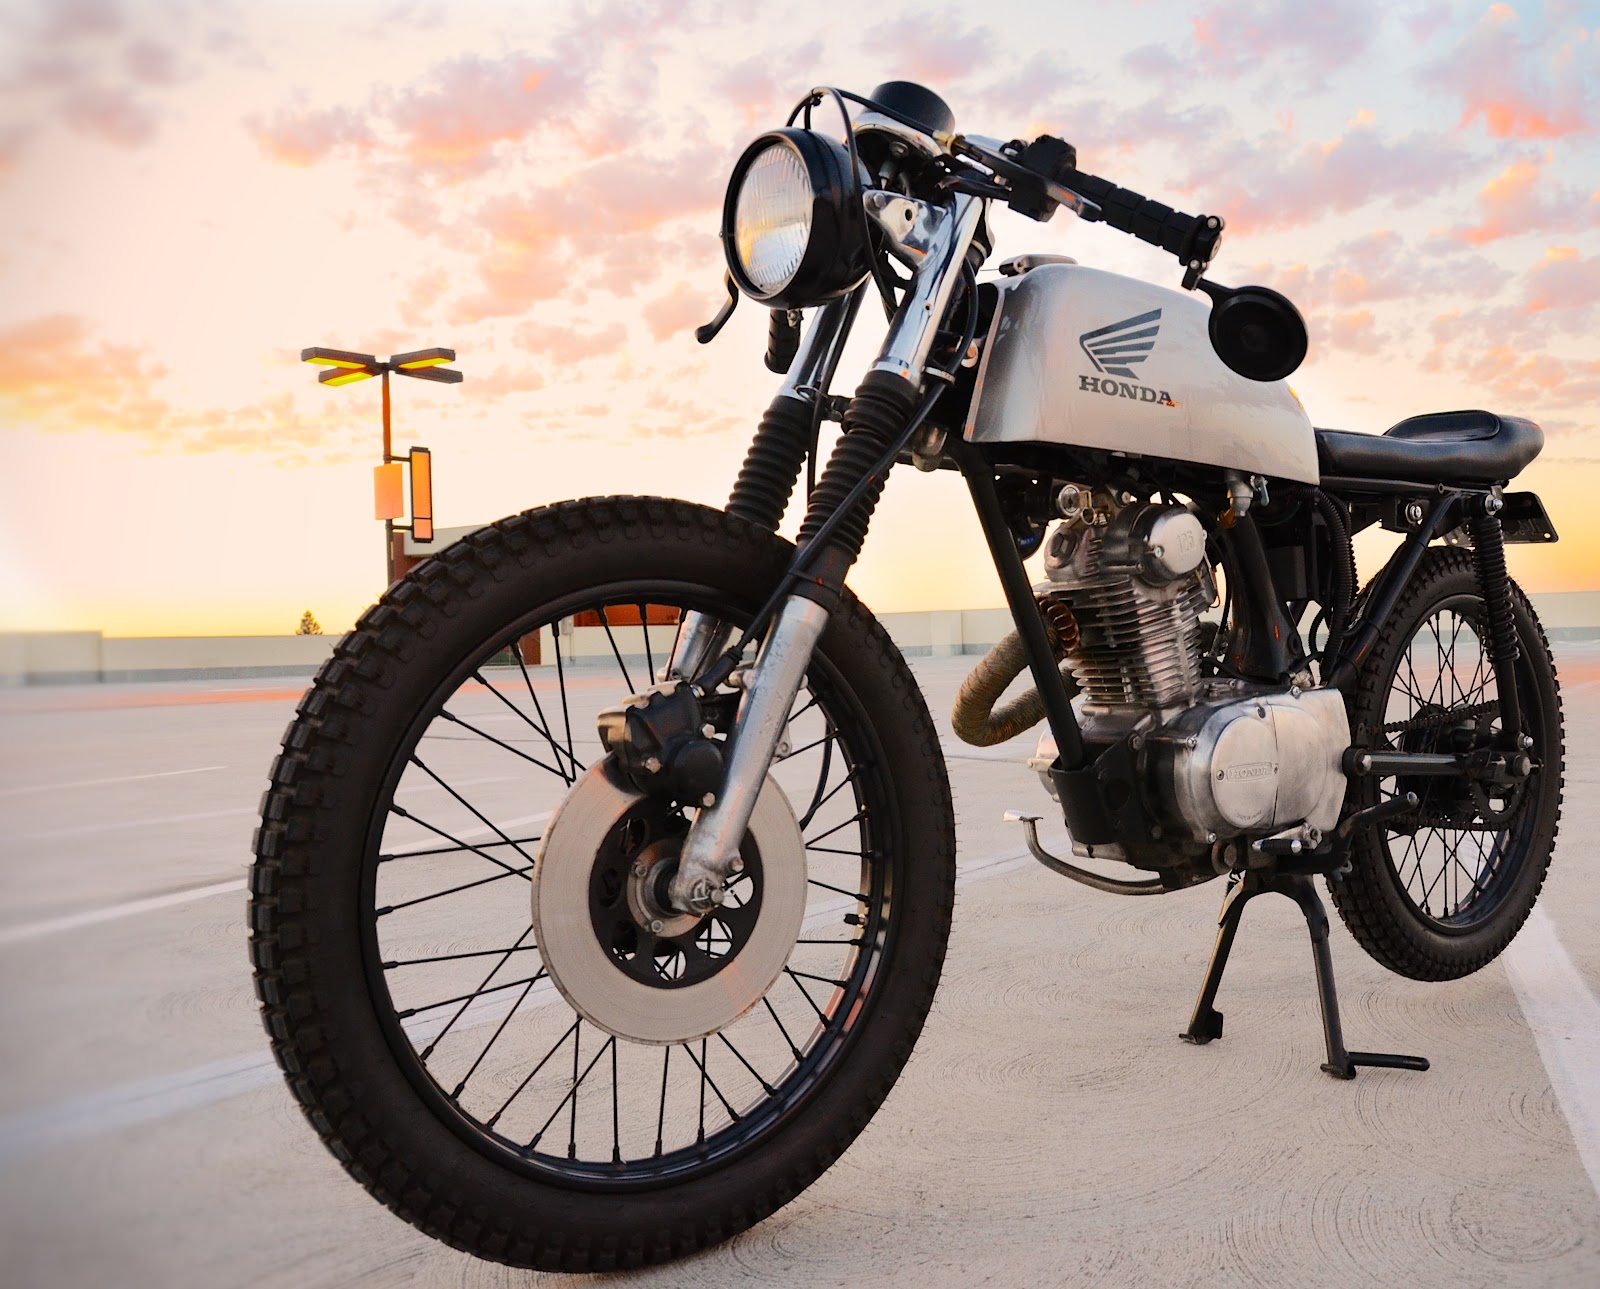 Connu Honda CB125s Cafe Racer ~ Return of the Cafe Racers XY98